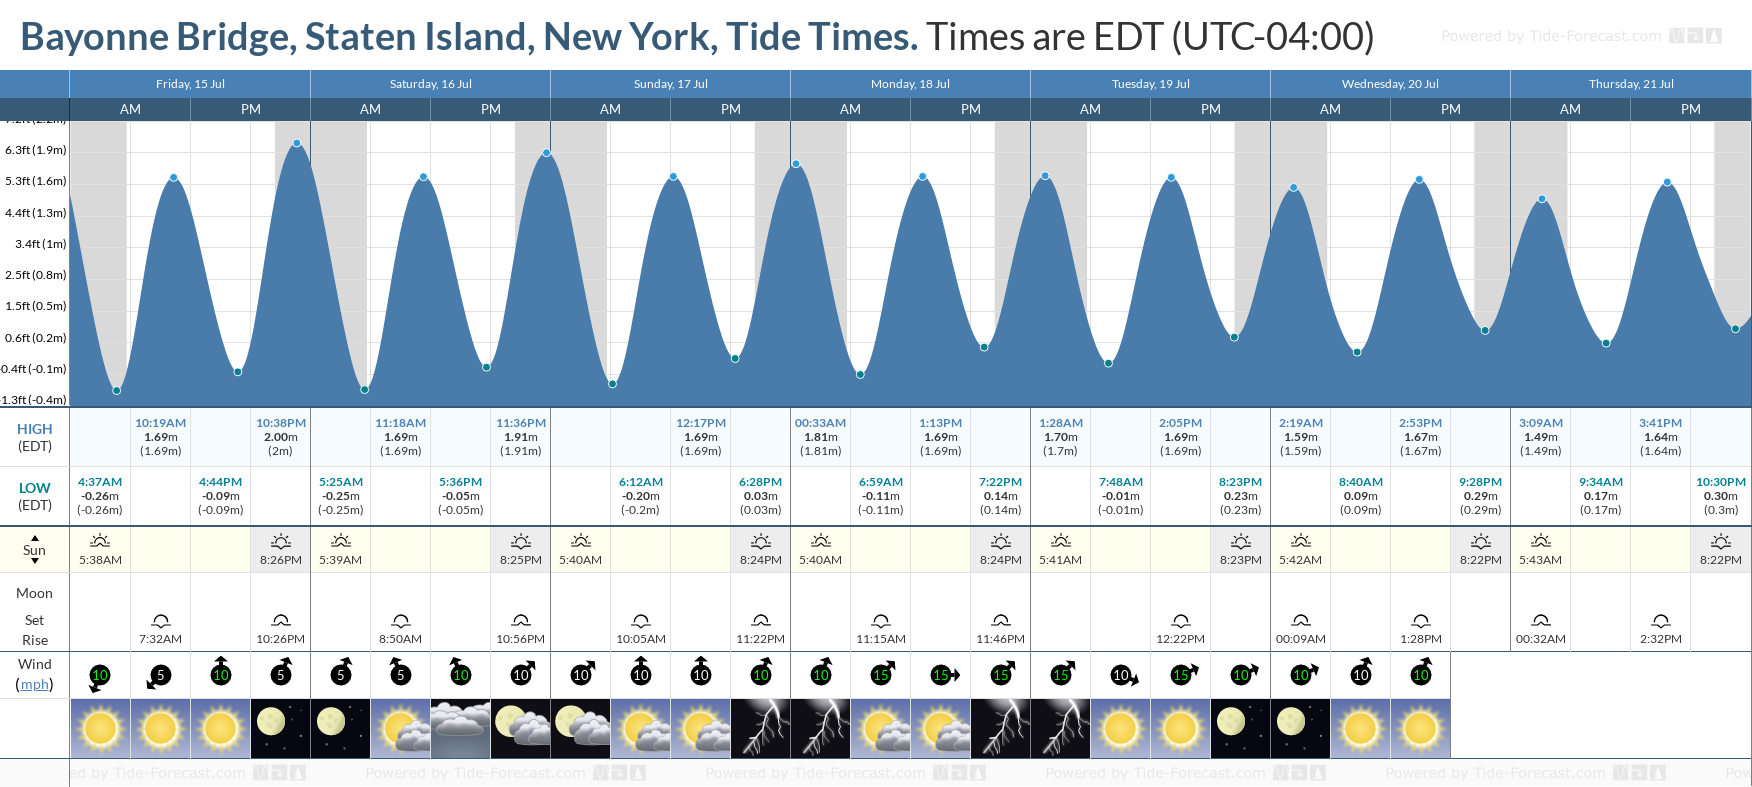 Bayonne Bridge, Staten Island, New York Tide Chart including high and low tide tide times for the next 7 days